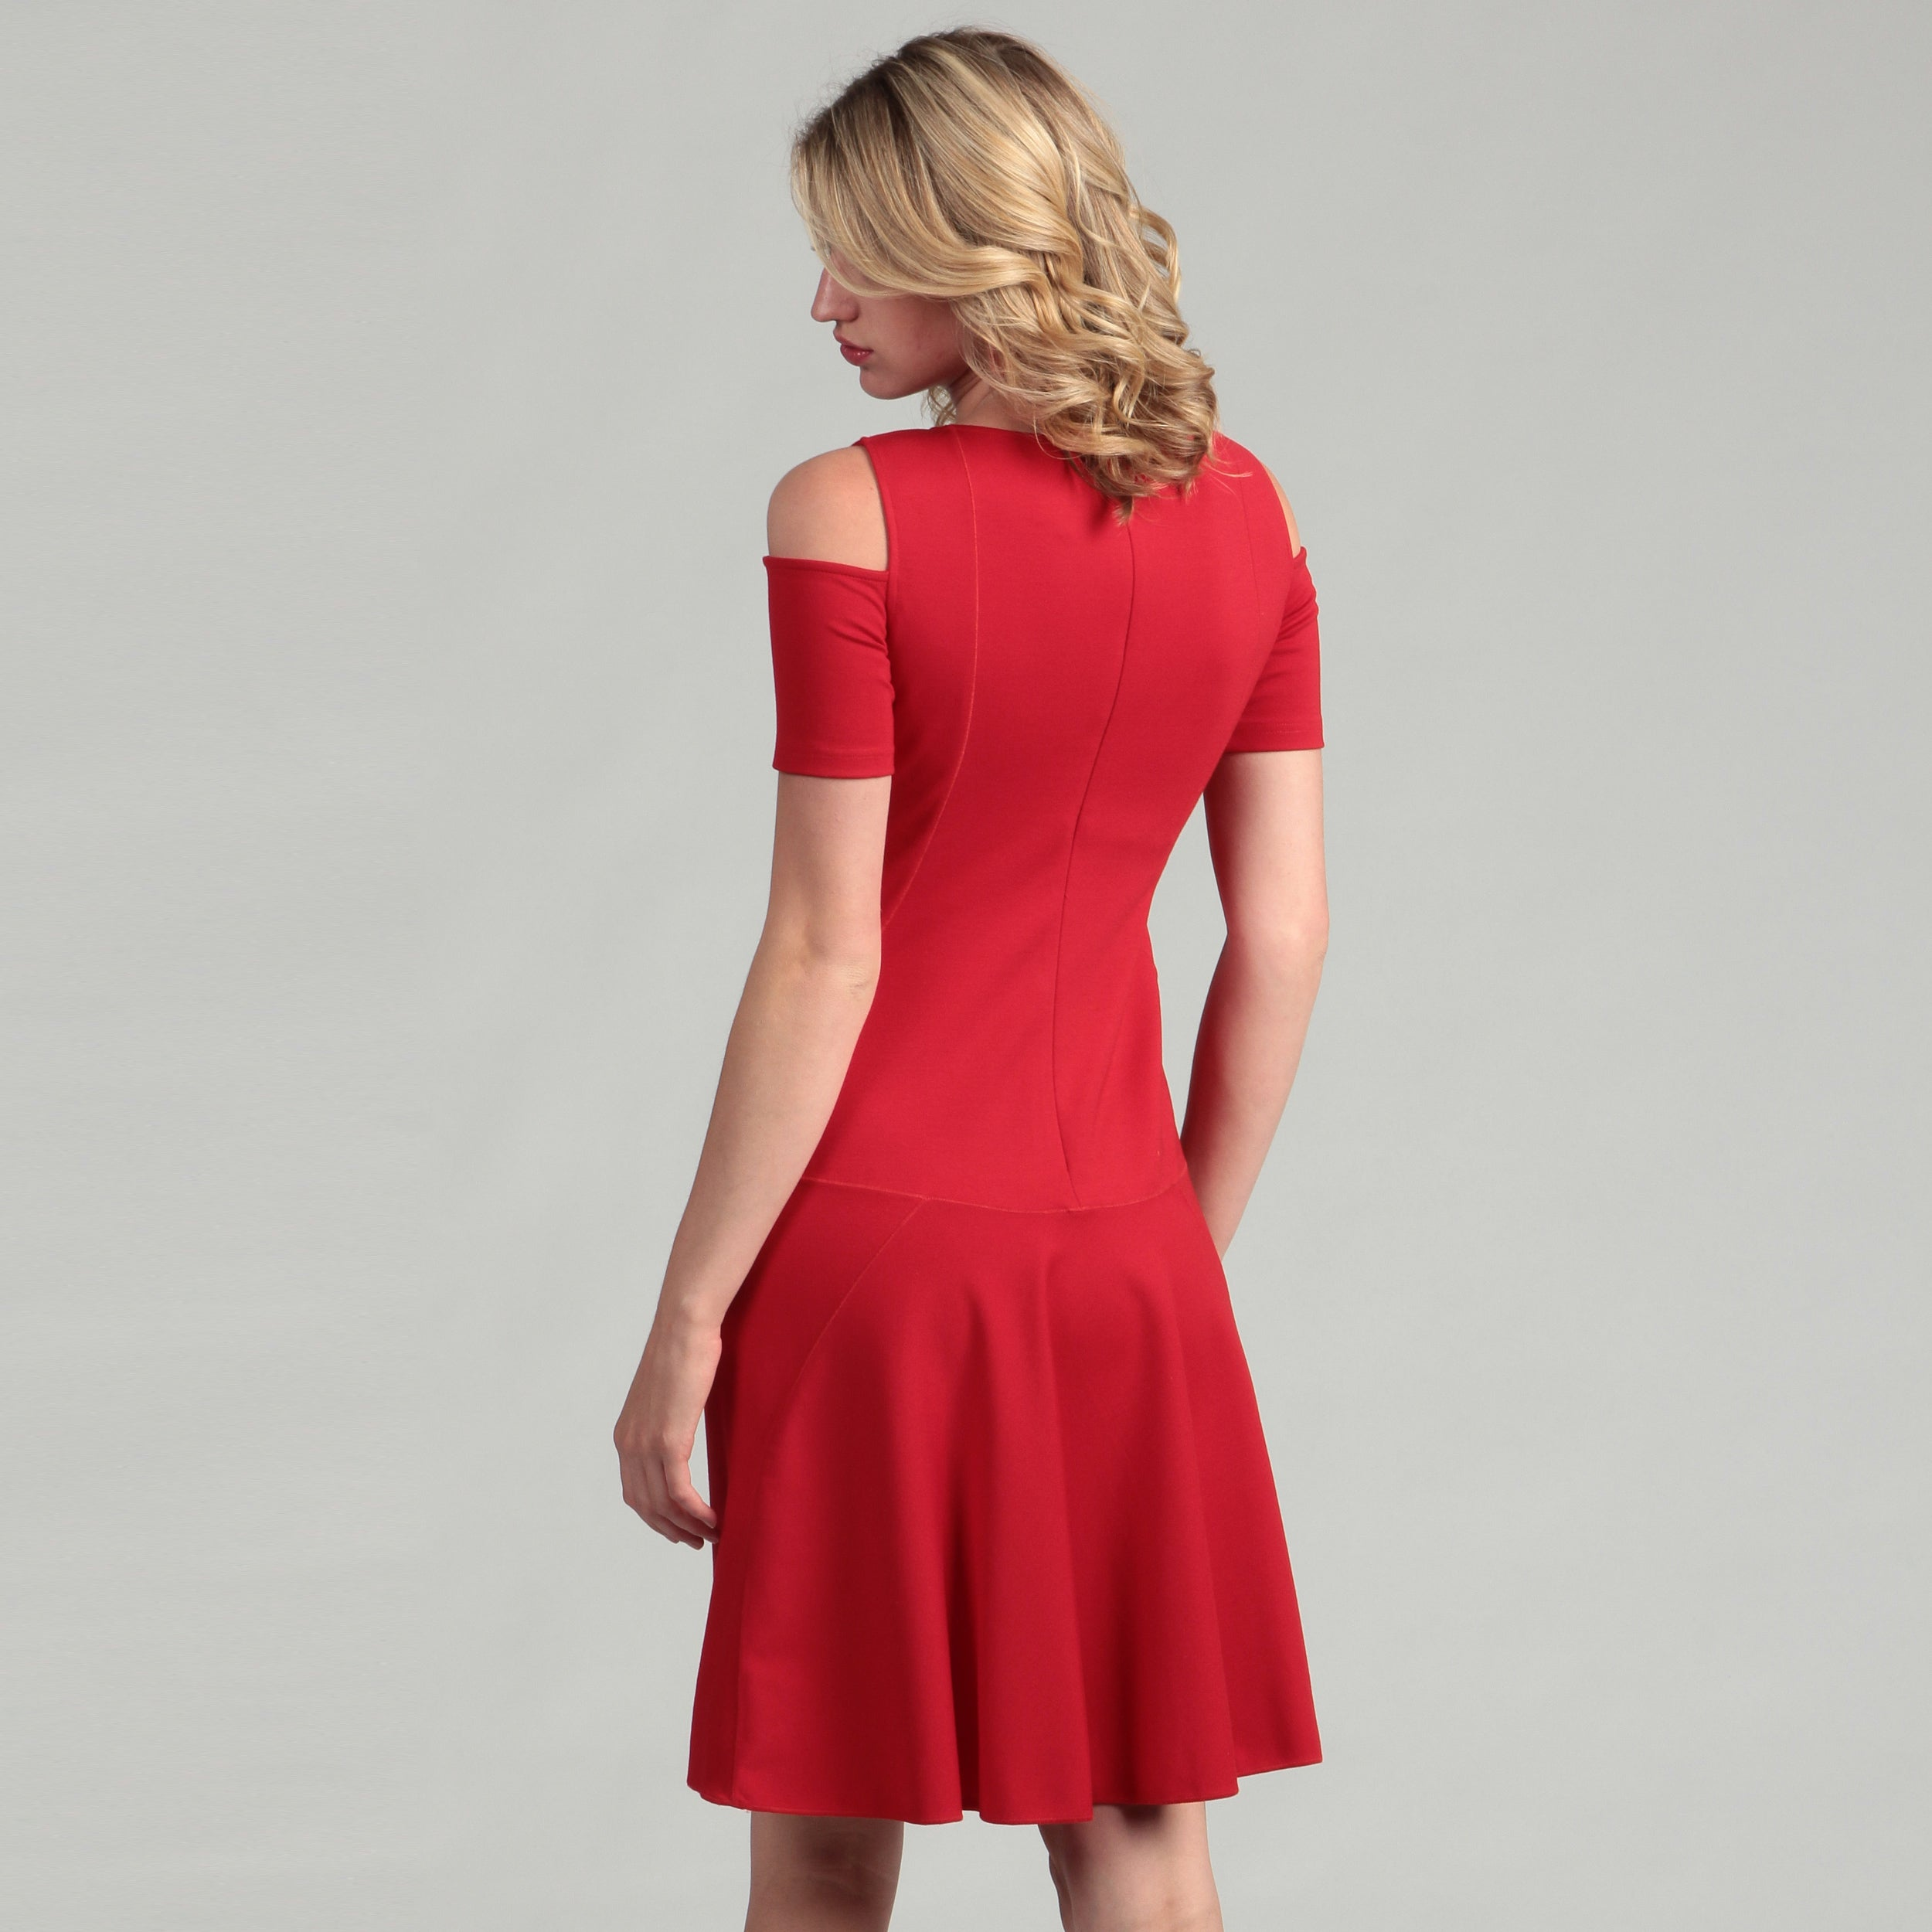 d85c8be52ce Shop Nue by Shani Women s  Built-in Body Shapers  Cold Shoulder Dress - Free  Shipping On Orders Over  45 - Overstock - 6395031